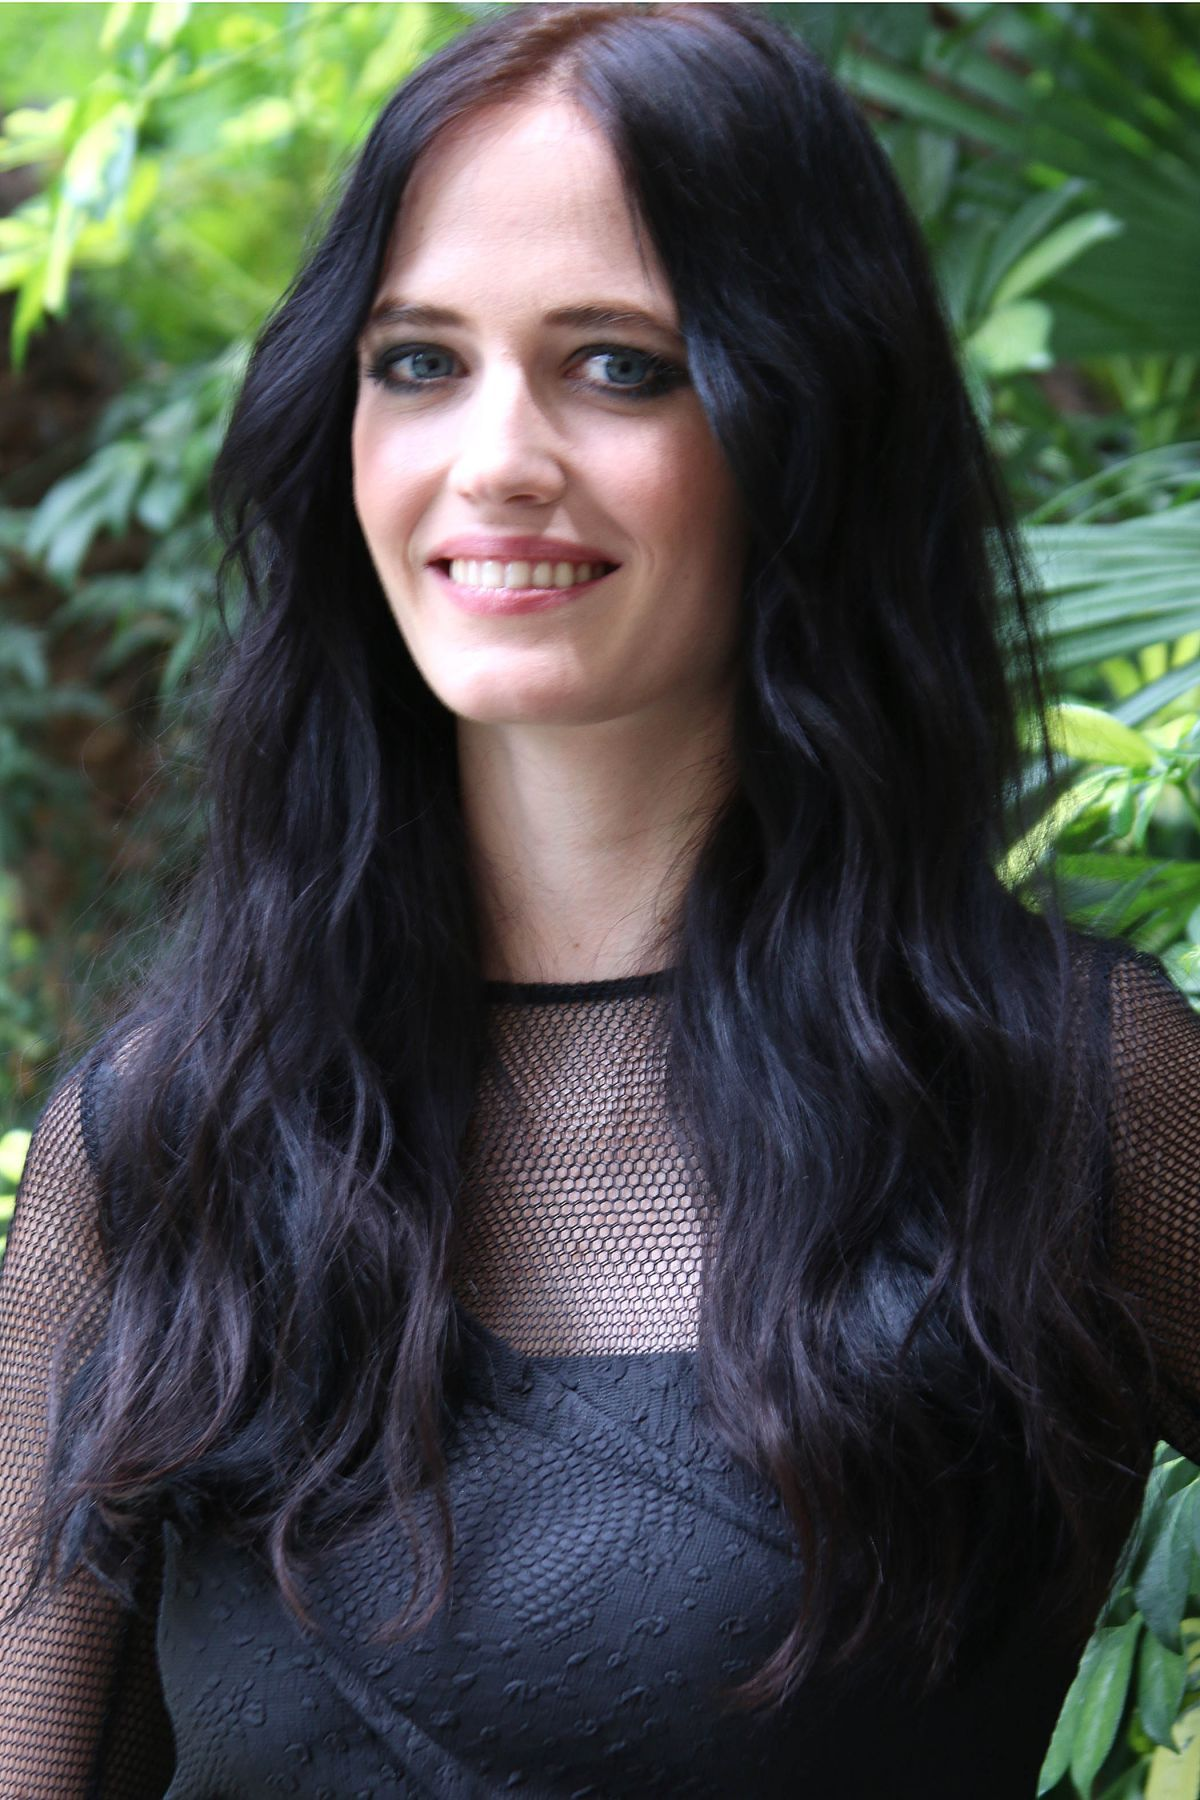 eva green fan site